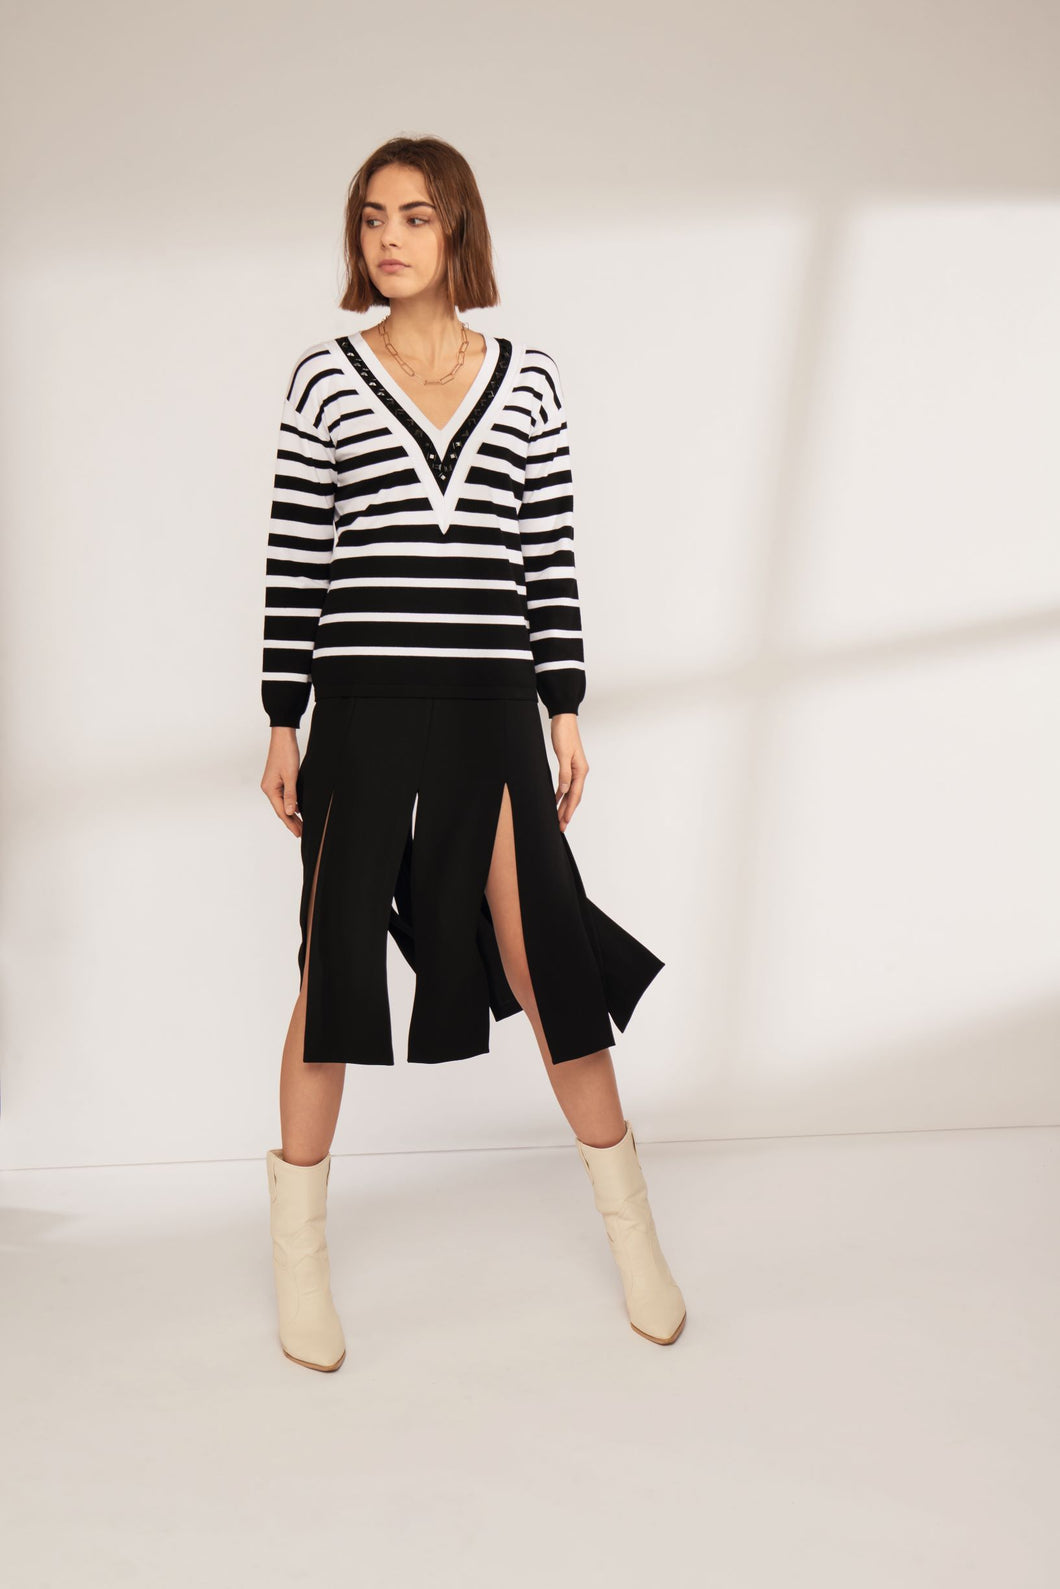 Leo & Ugo Monochrome Stripe Knit Top